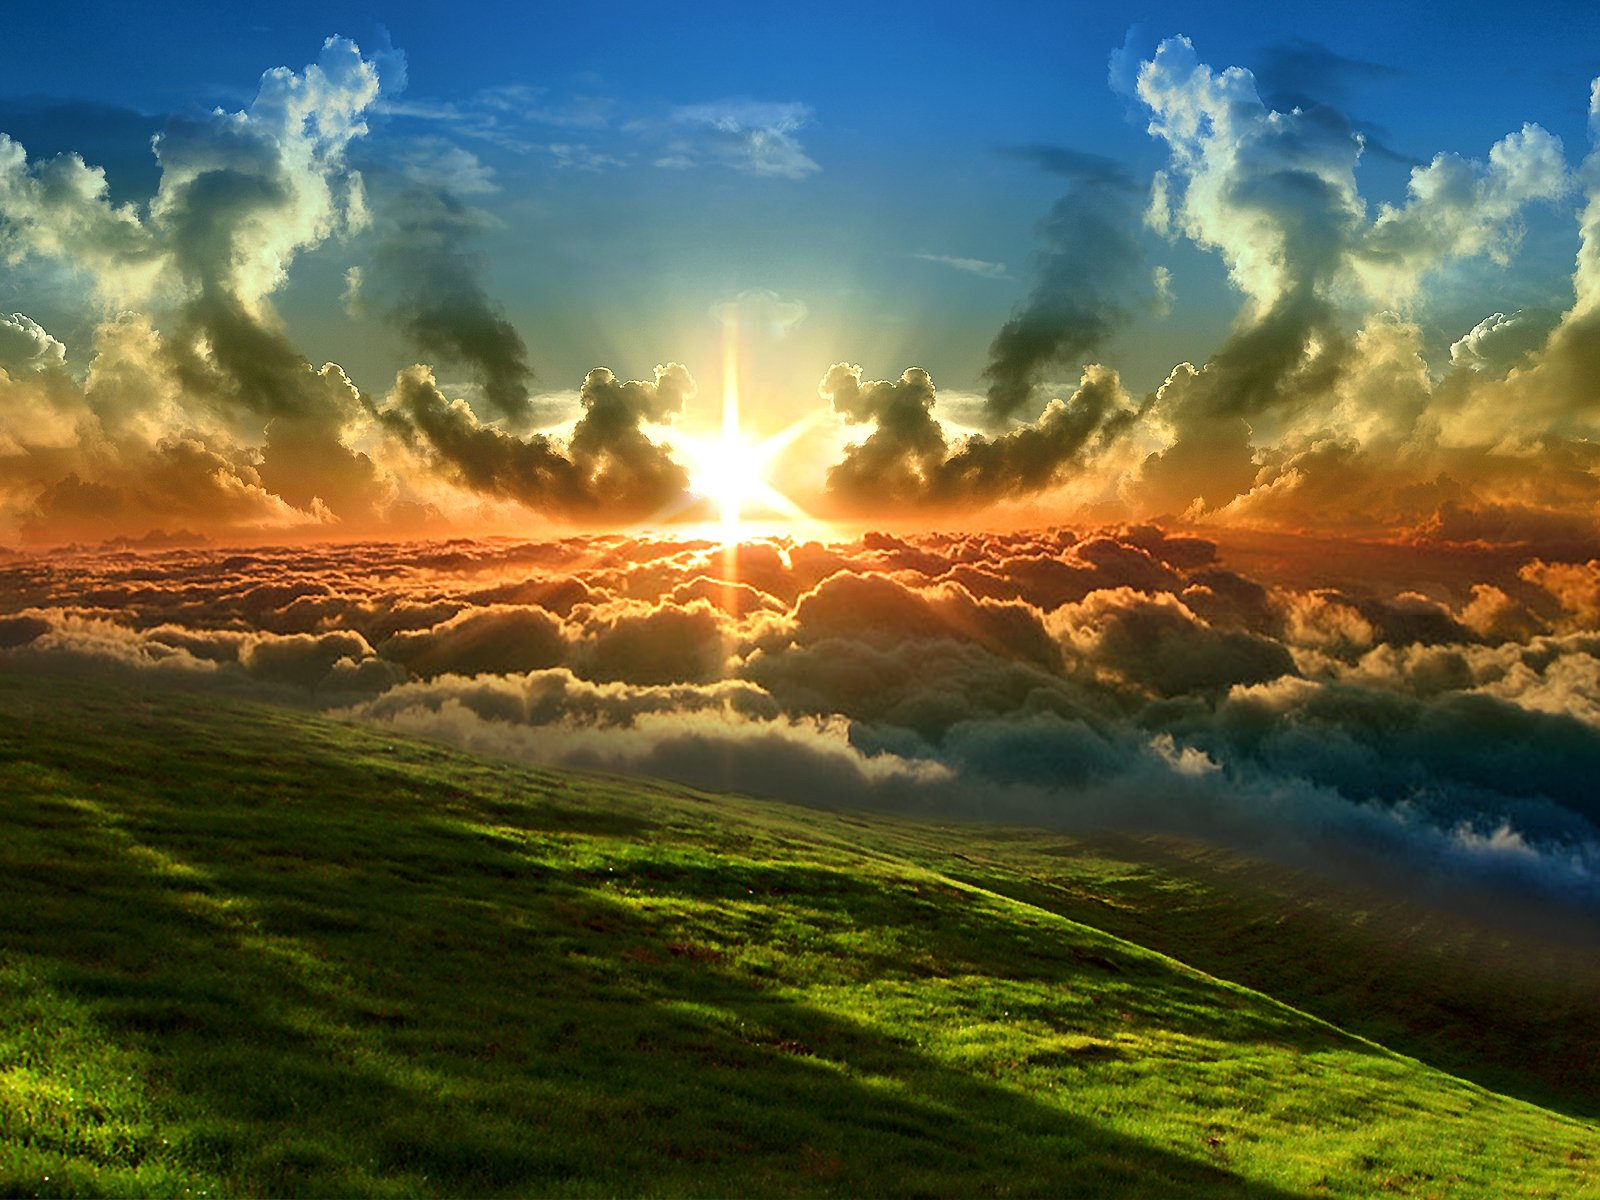 1354 sun hd wallpapers | background images - wallpaper abyss